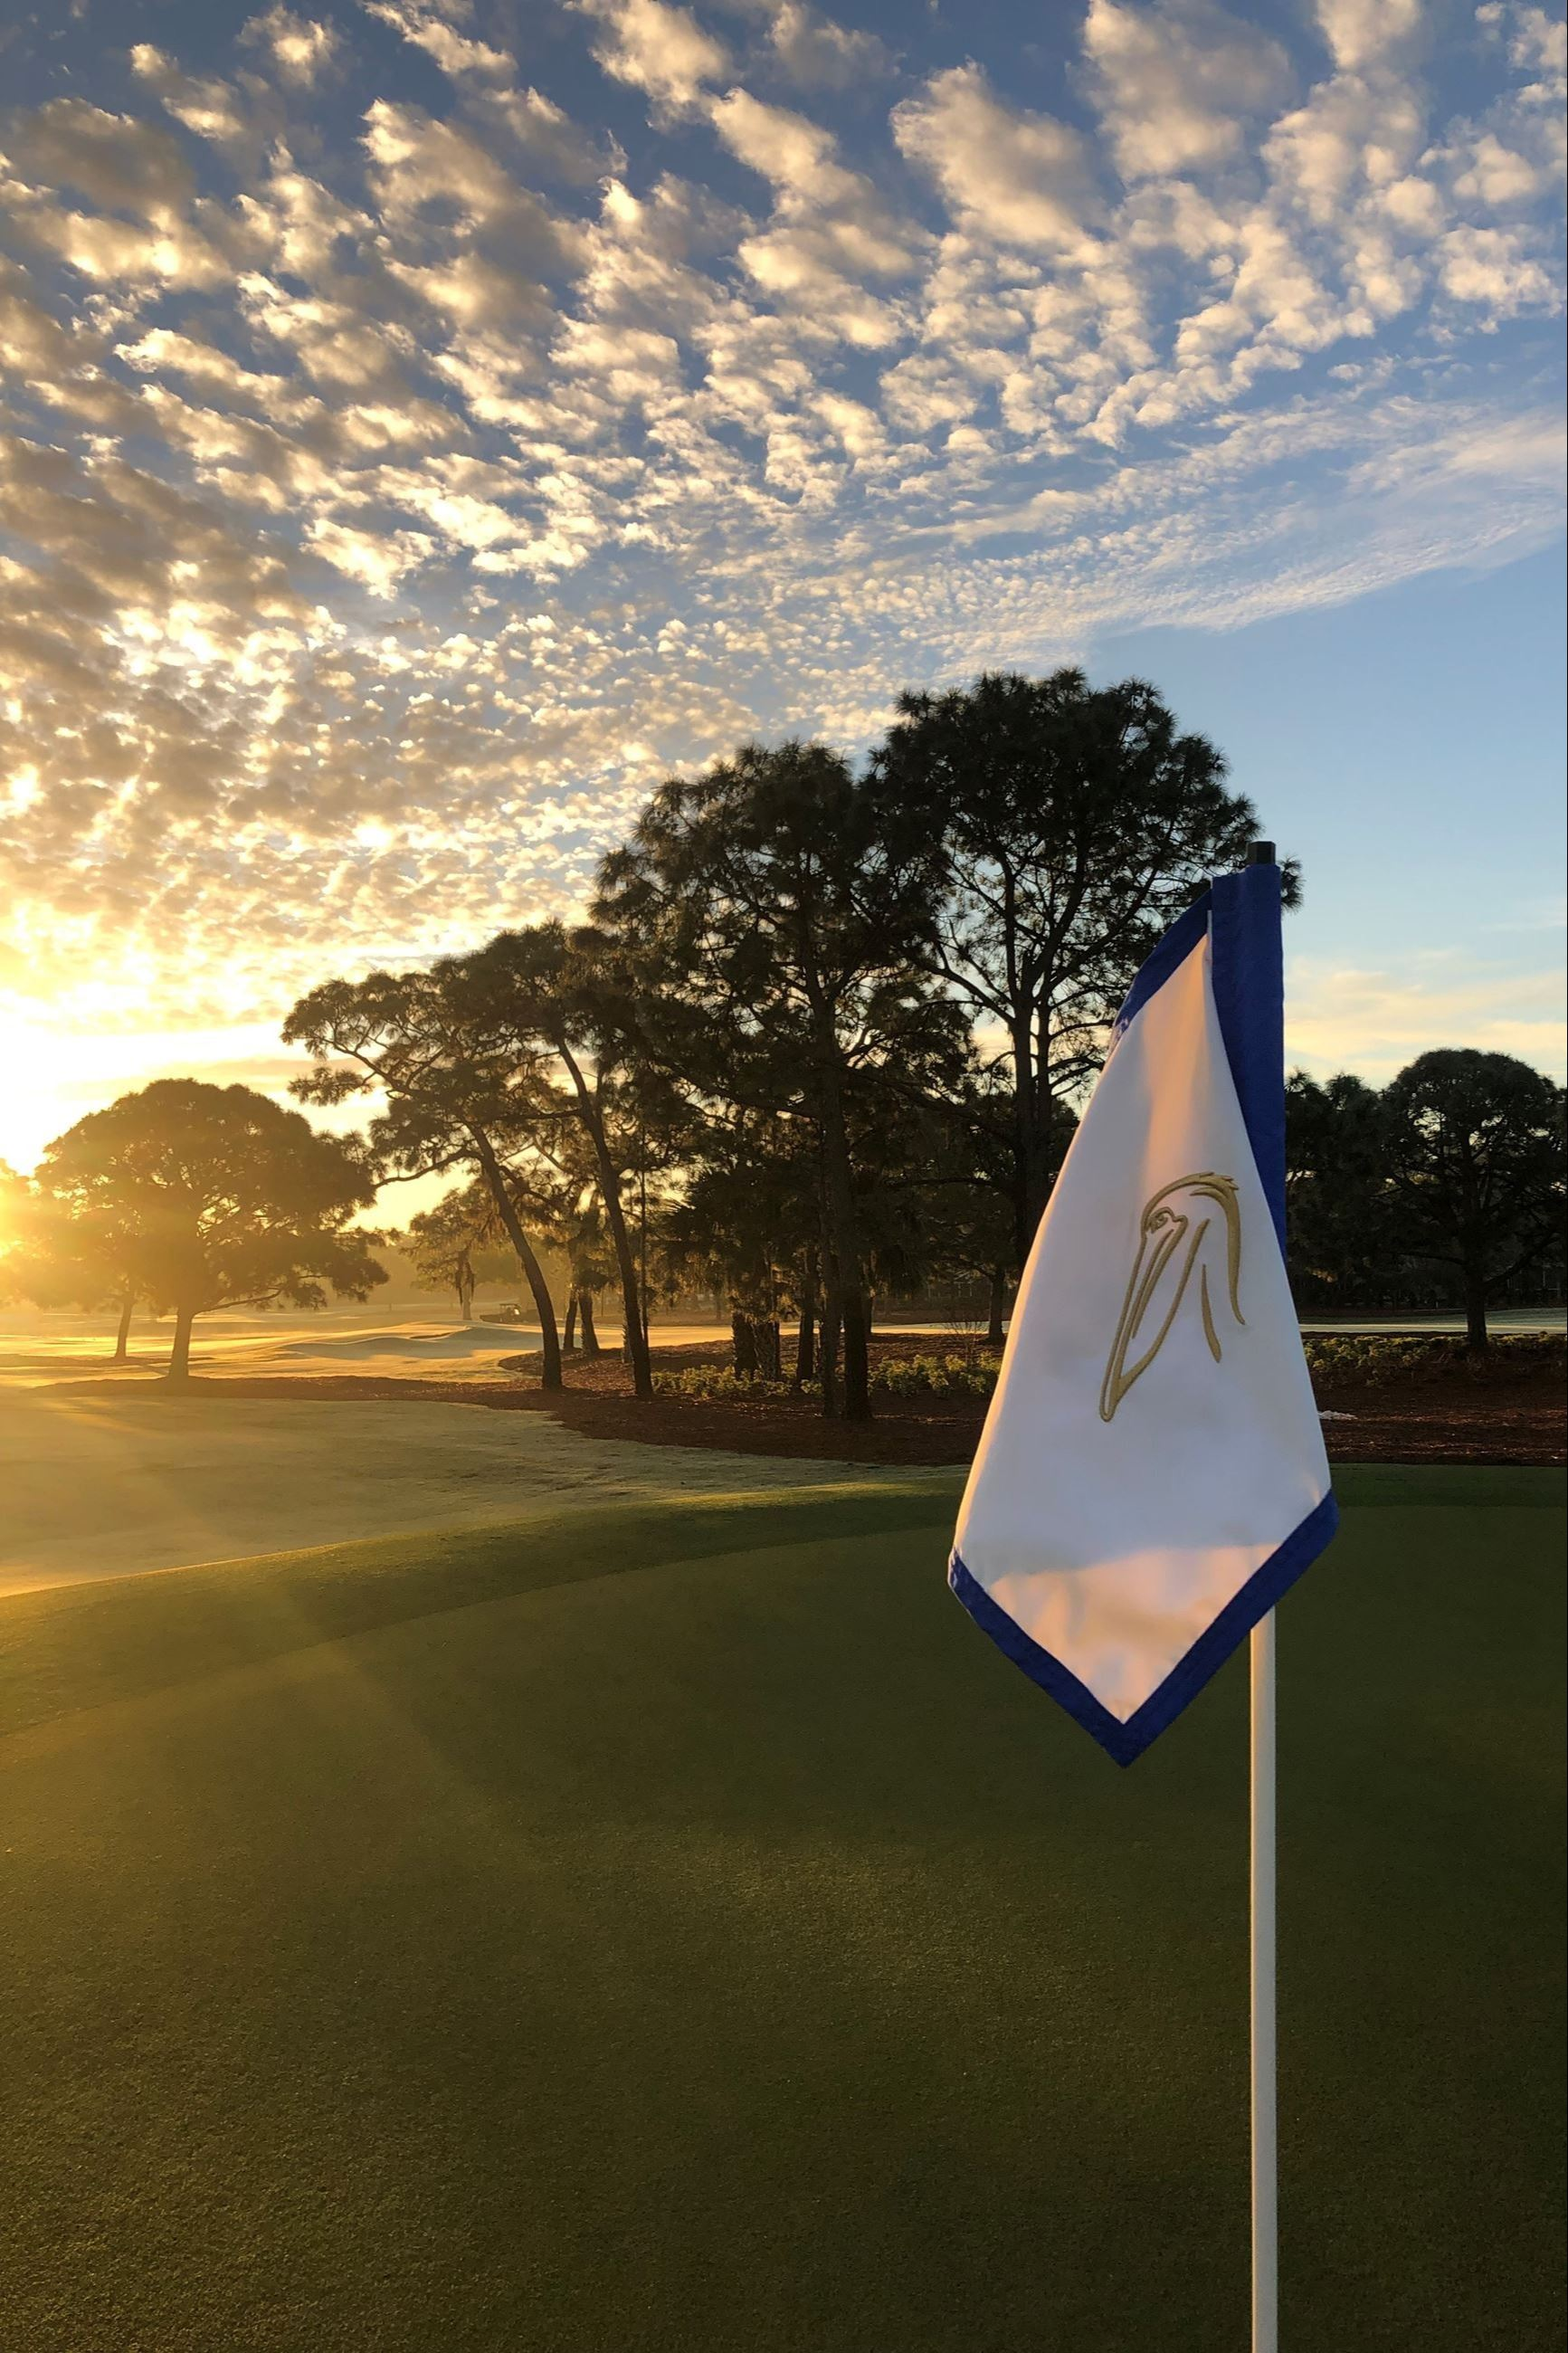 A flag with the Pelican Golf Club logo stands on the course with the sun setting in the background.